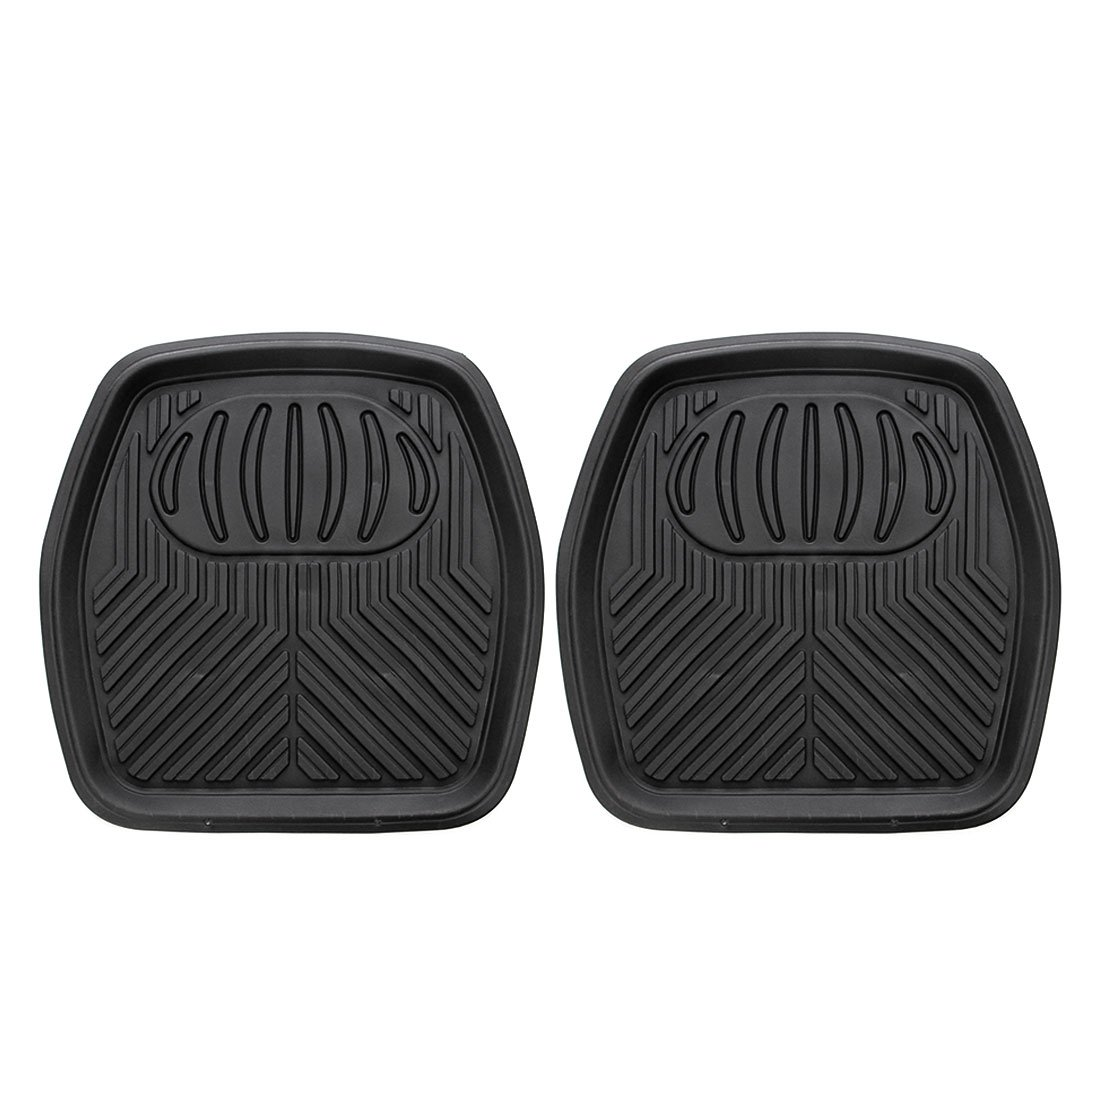 2pcs Semi Custom Trimmable Universal Fit Mat for Car Van /& Trucks Beige SUV Copap Front Rubber Floor Mats